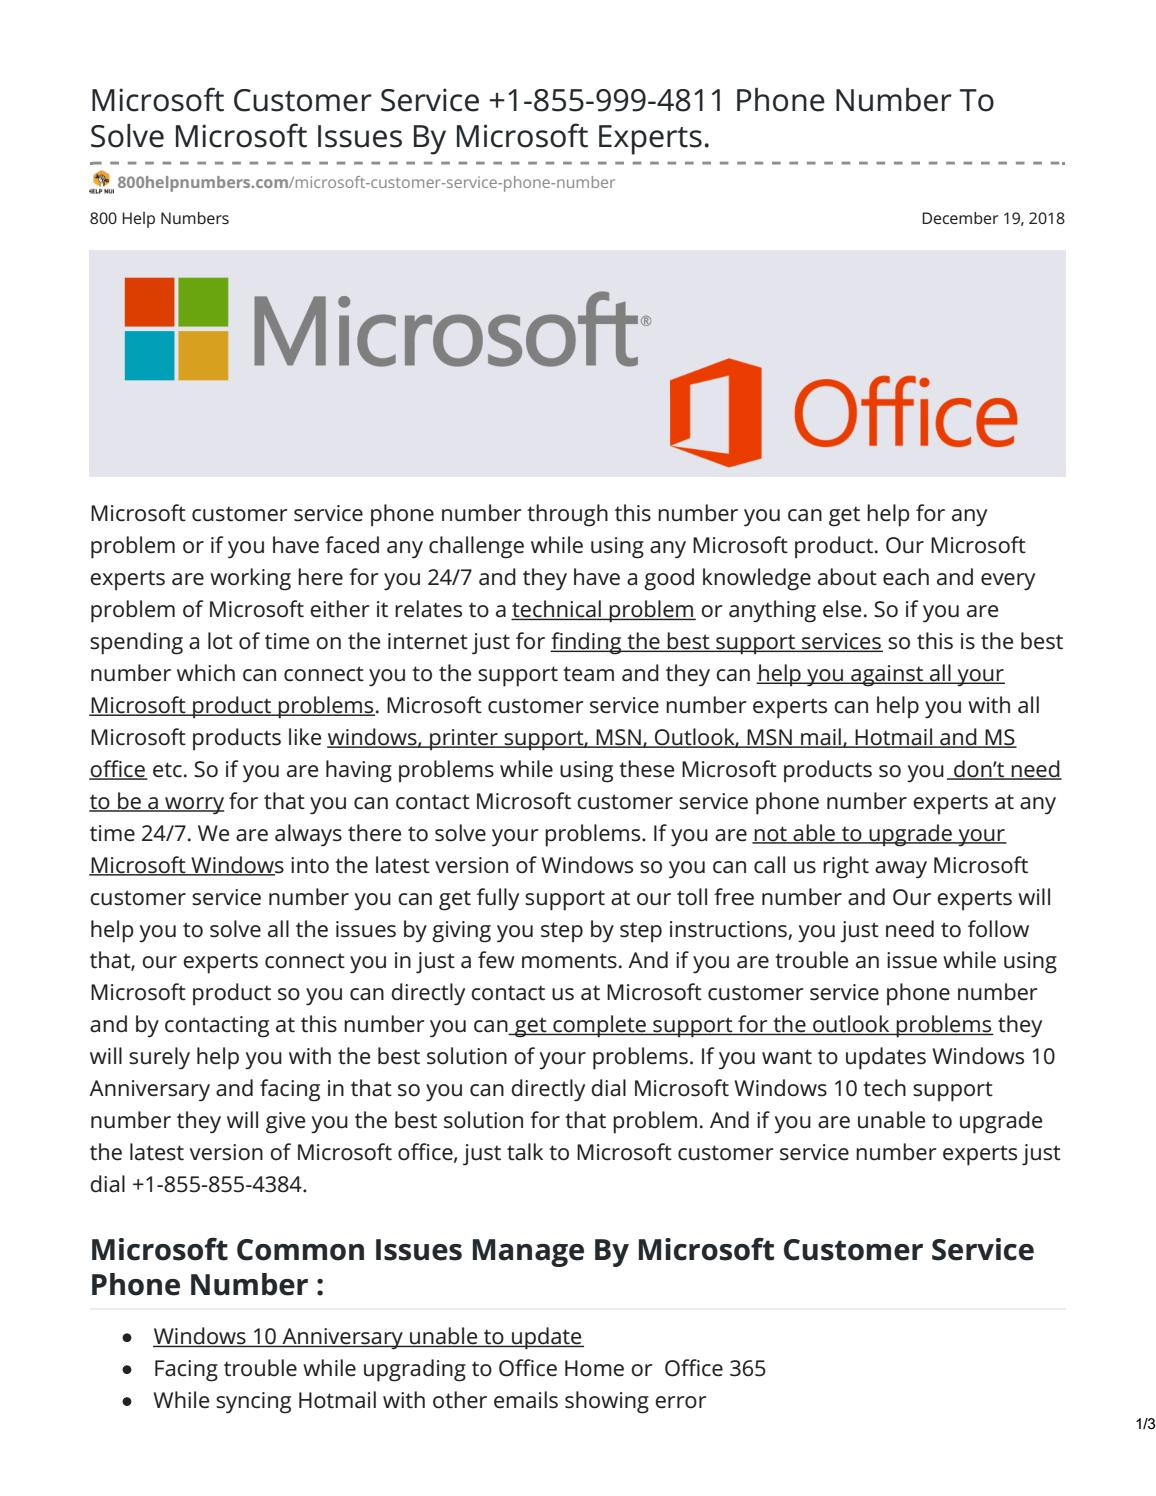 Microsoft Customer Service +1-855-999-4811 Phone Number To Solve